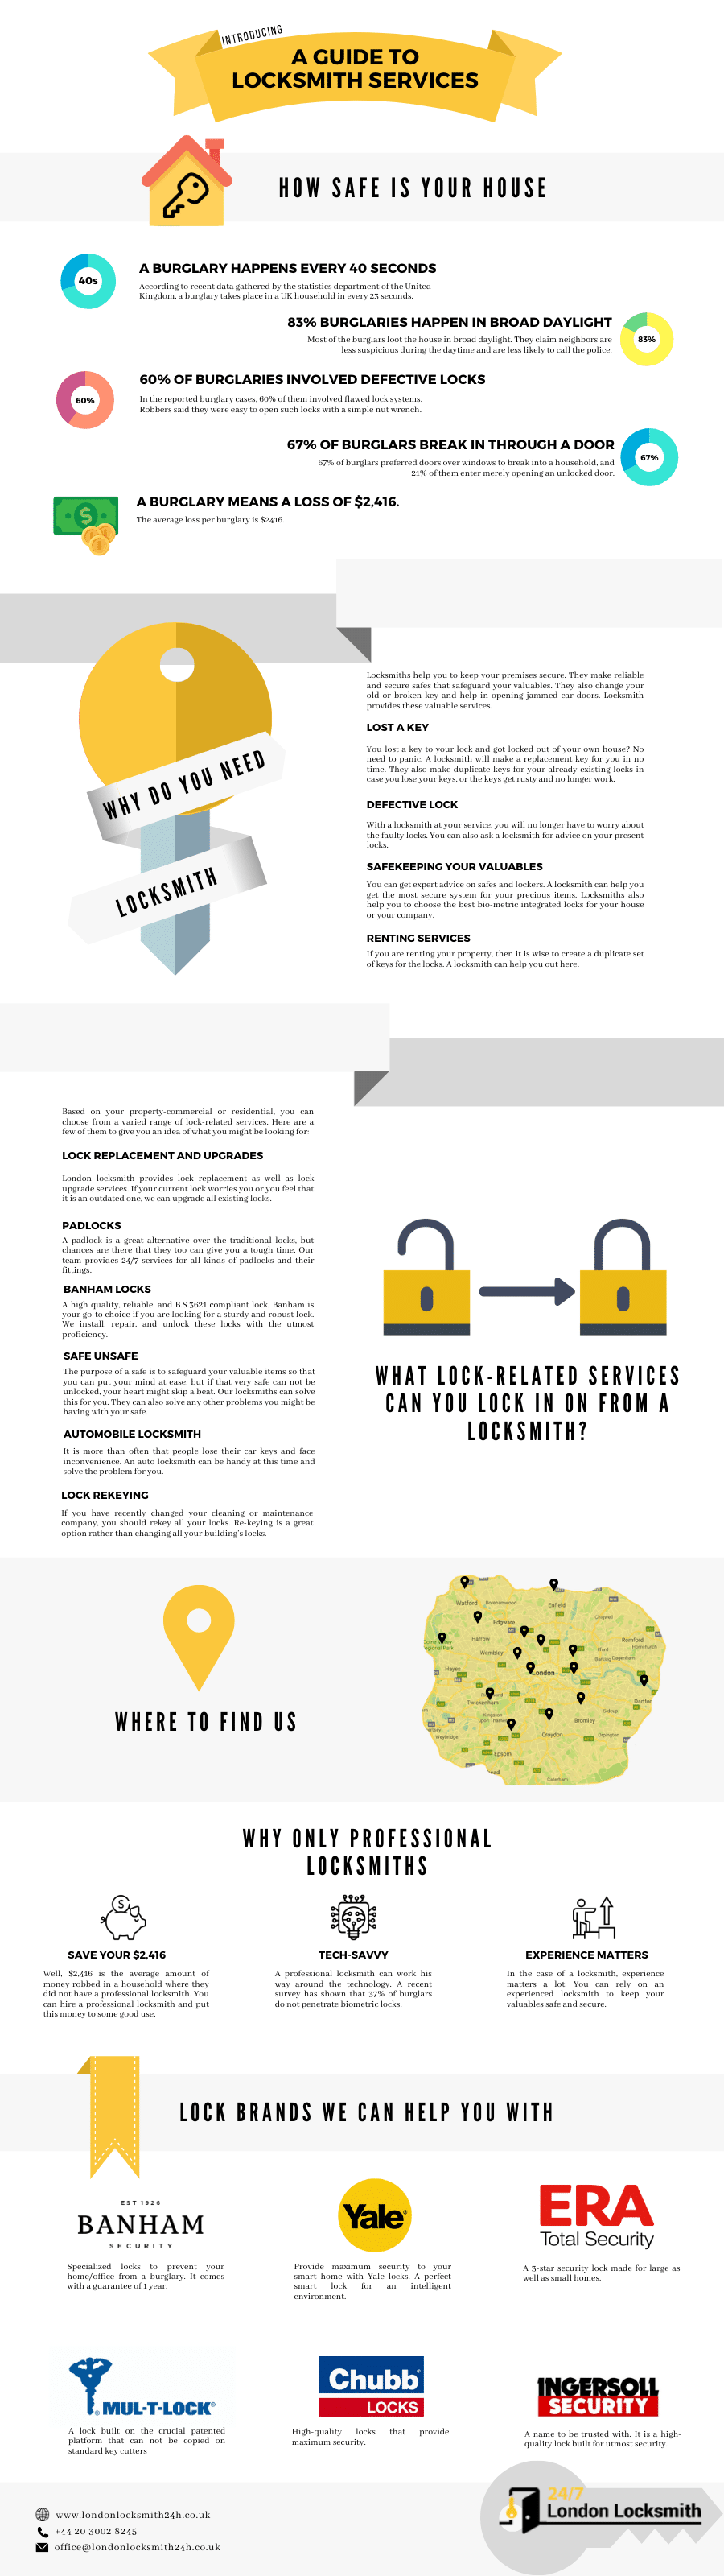 A-guide-to-locksmith-services-infographic